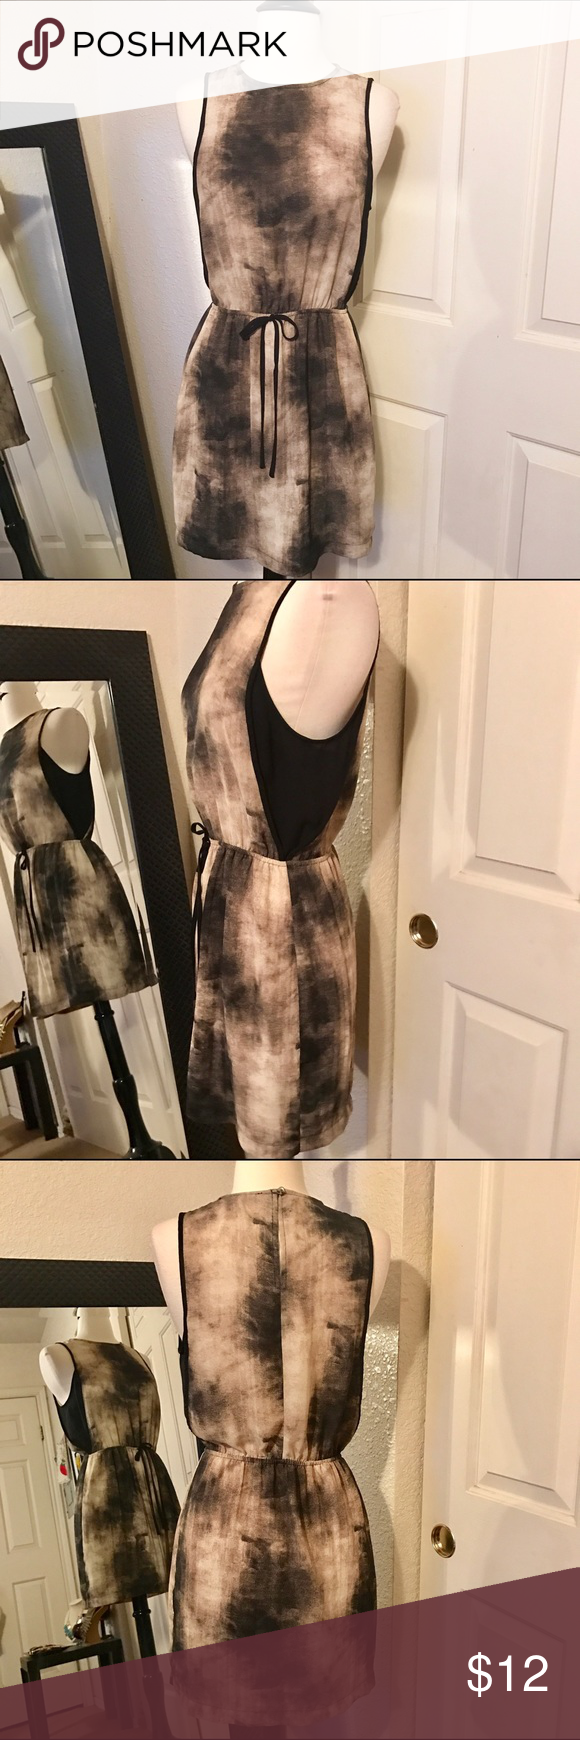 Preowned Forever 21 Dress Excellent condition Forever 21 Dresses